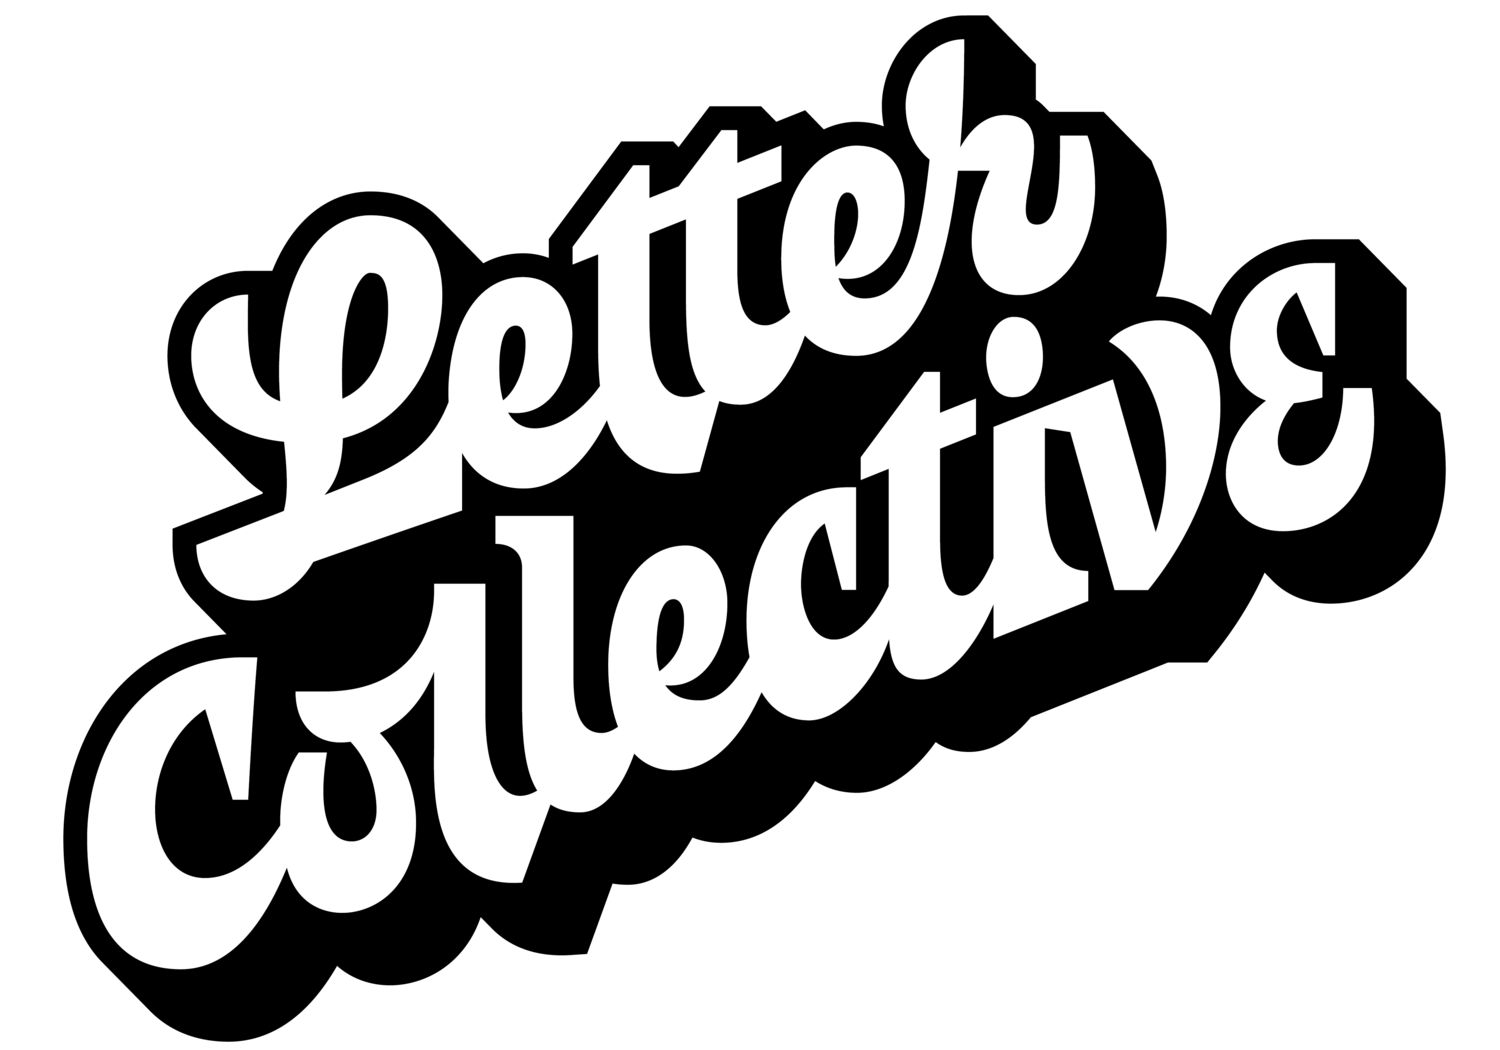 Letter Collective